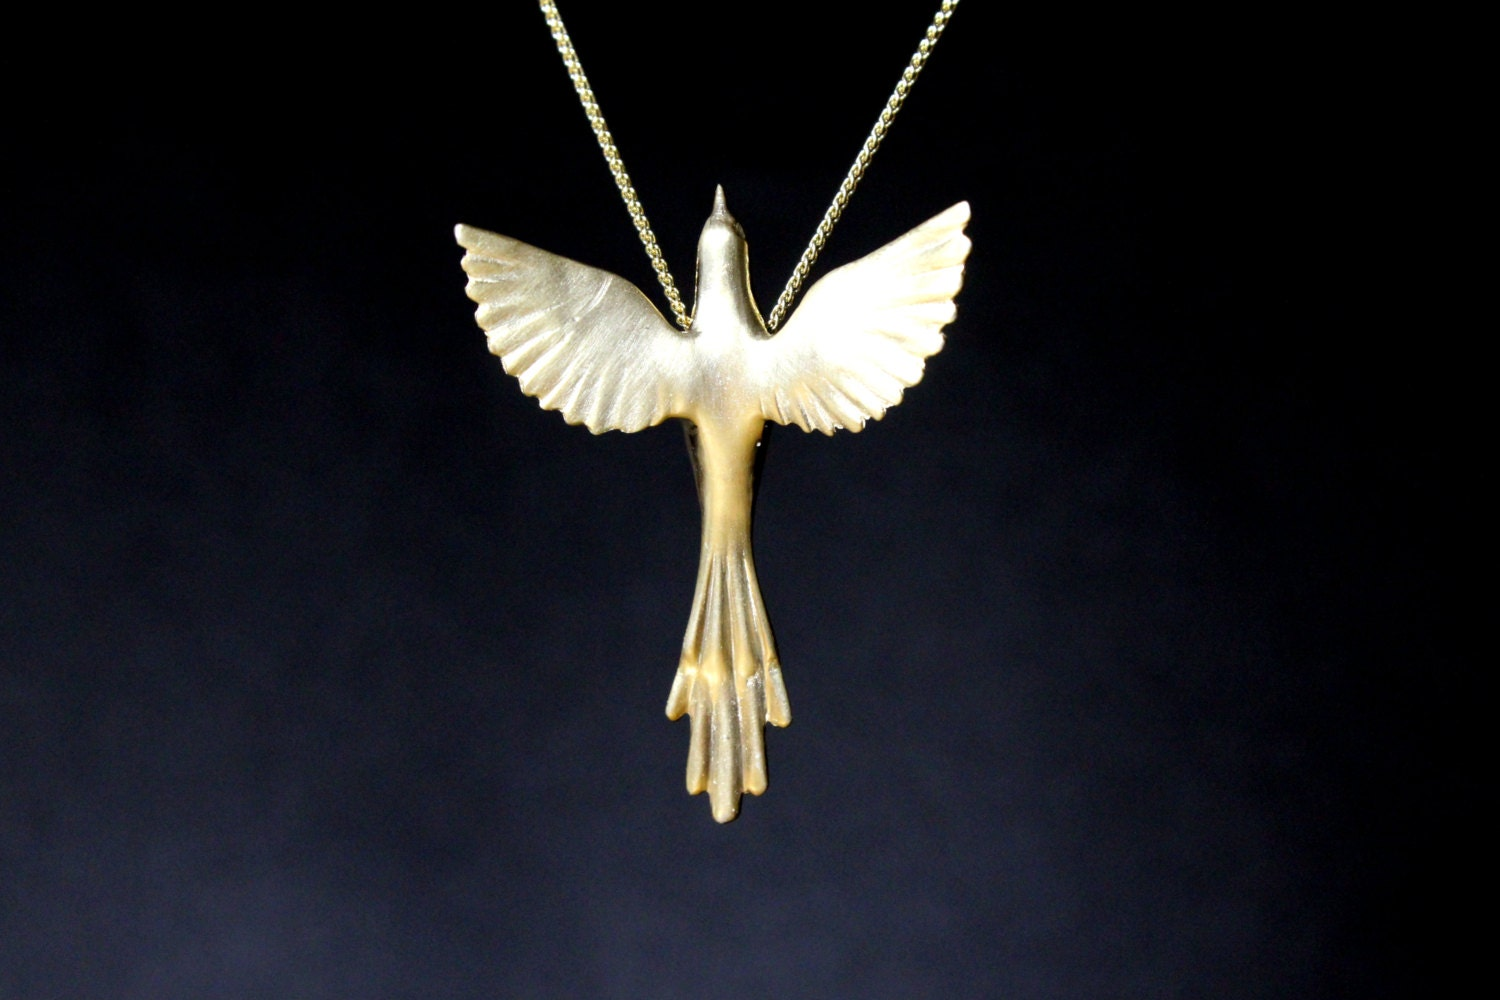 Phoenix bird necklace easter jewelry exotic bird greek mythology phoenix bird necklace easter jewelry exotic bird greek mythology necklace sterling silver pendant open wings hand carved mothers day gift mozeypictures Image collections